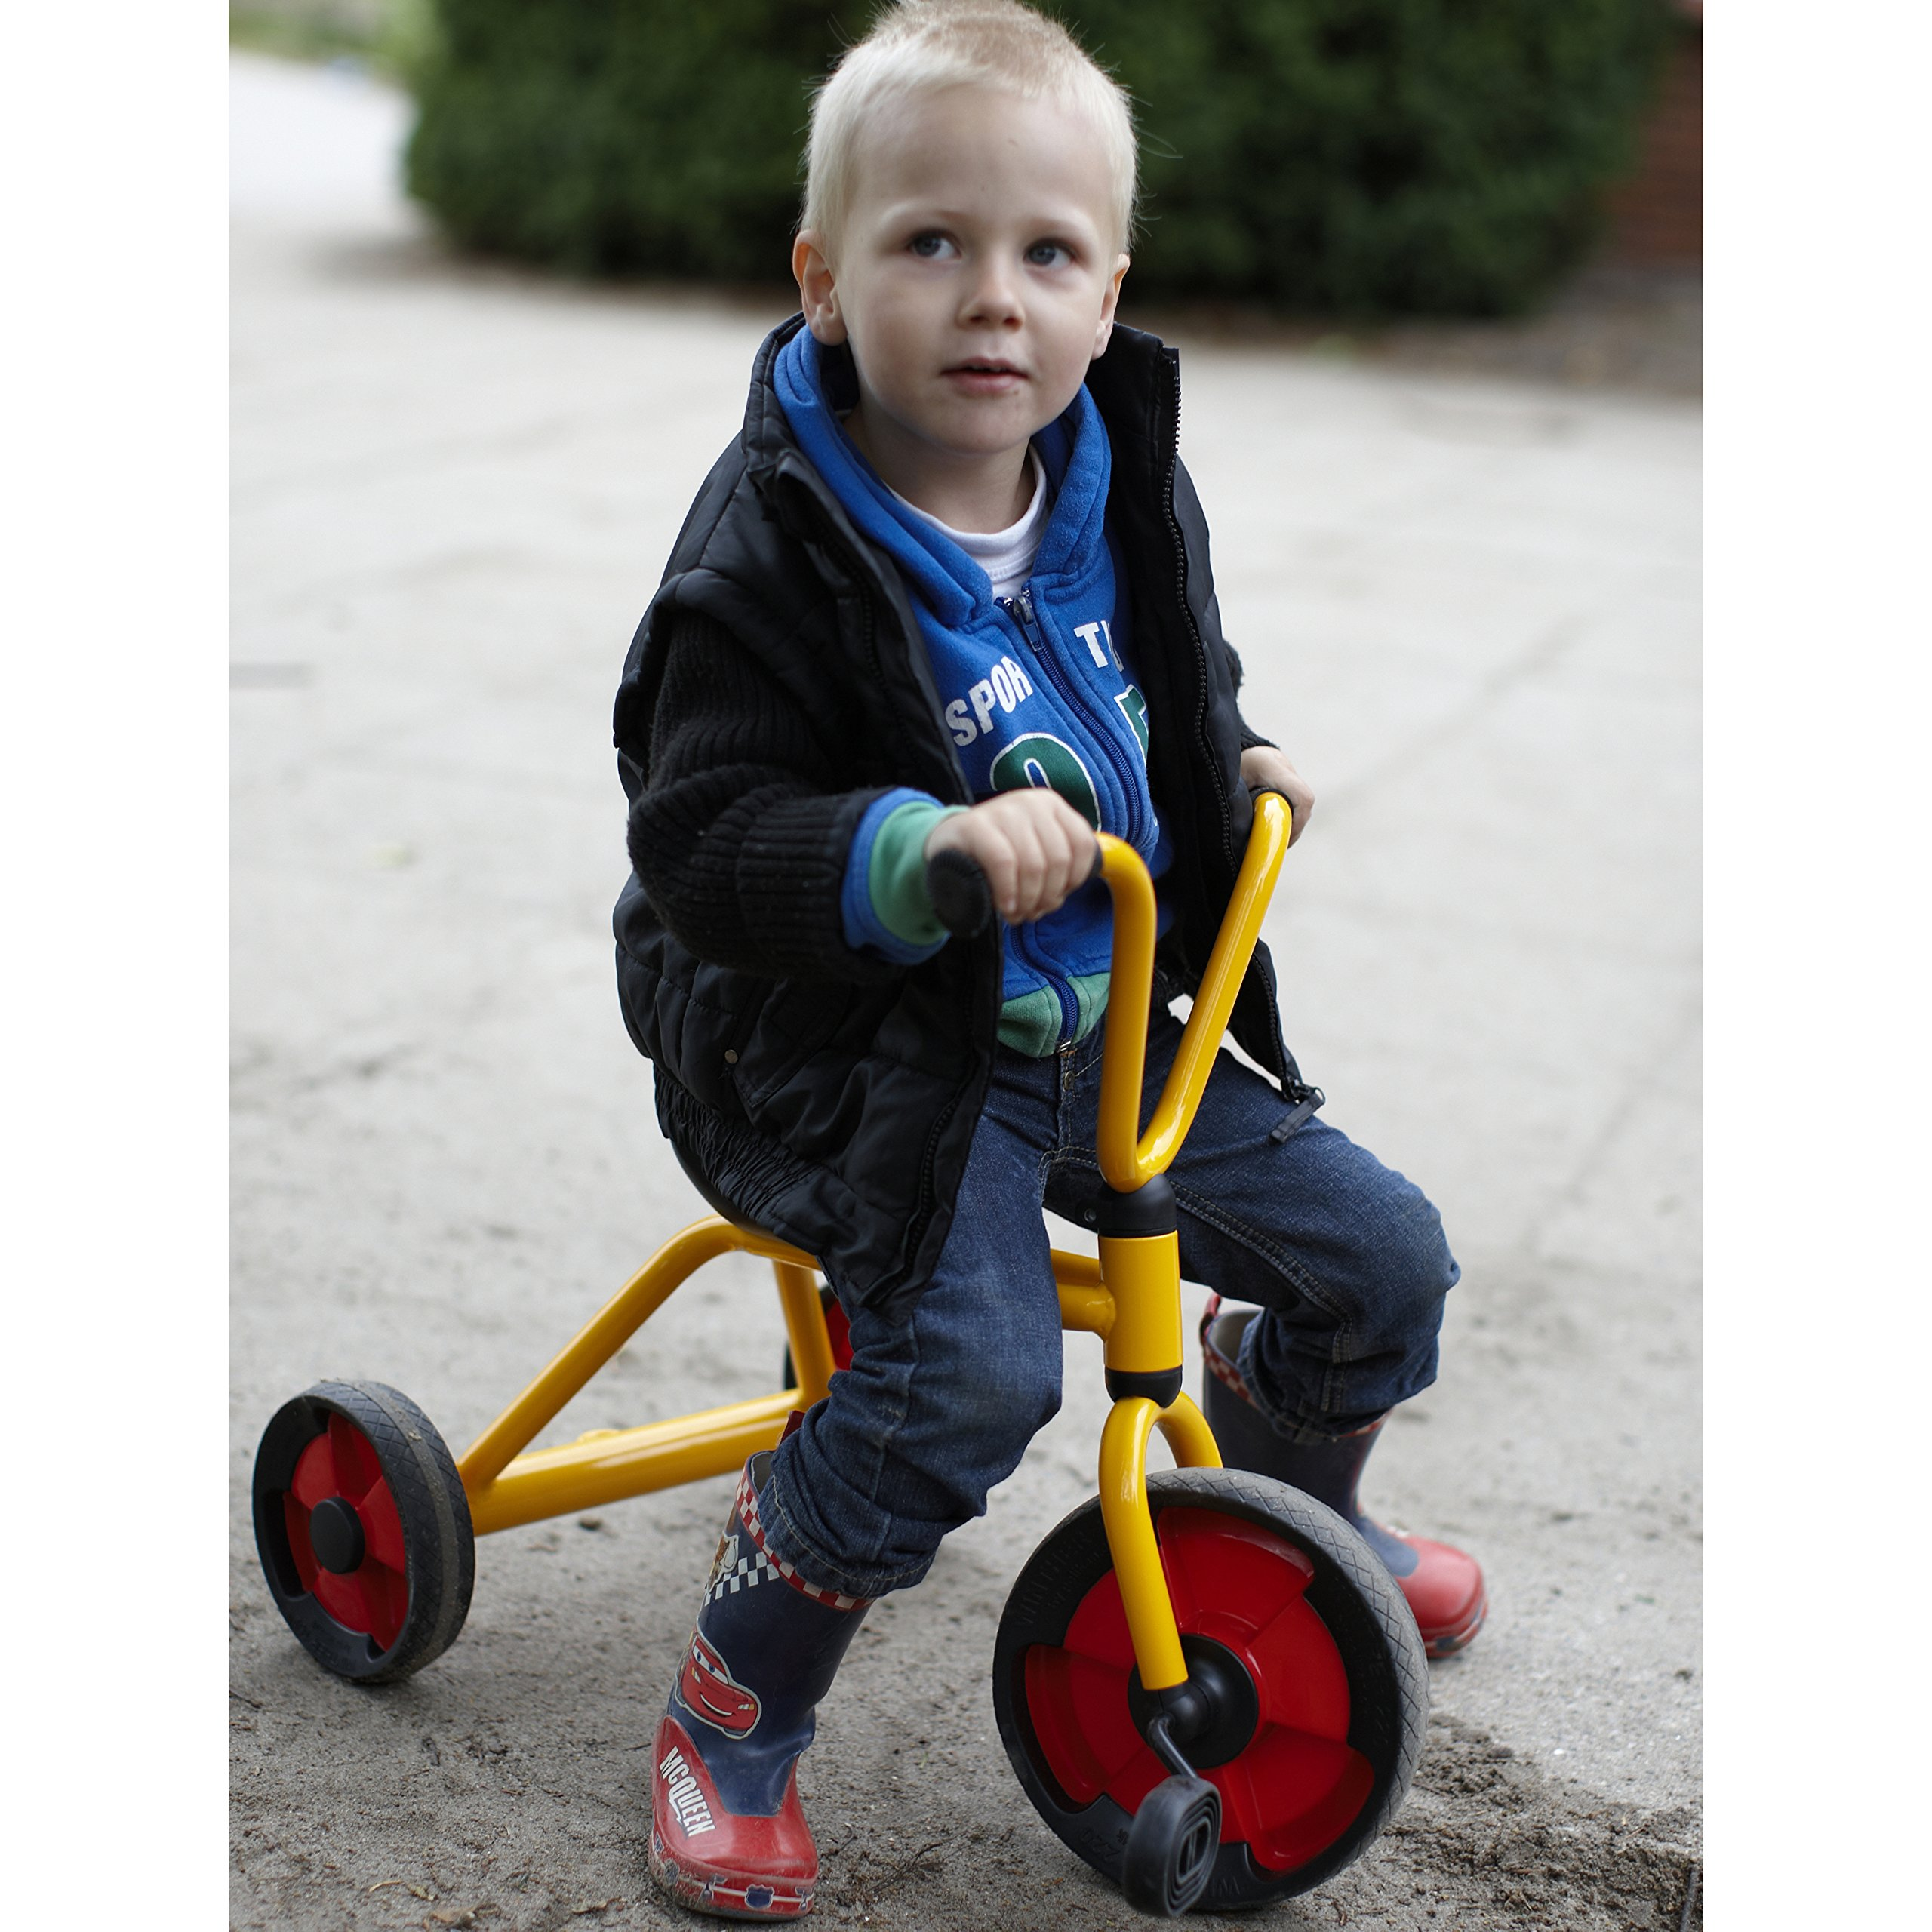 Winther WIN582 Tricycle Grade Kindergarten to 1, 10.63'' Height, 16.93'' Wide, 21.06'' Length by Winther (Image #2)